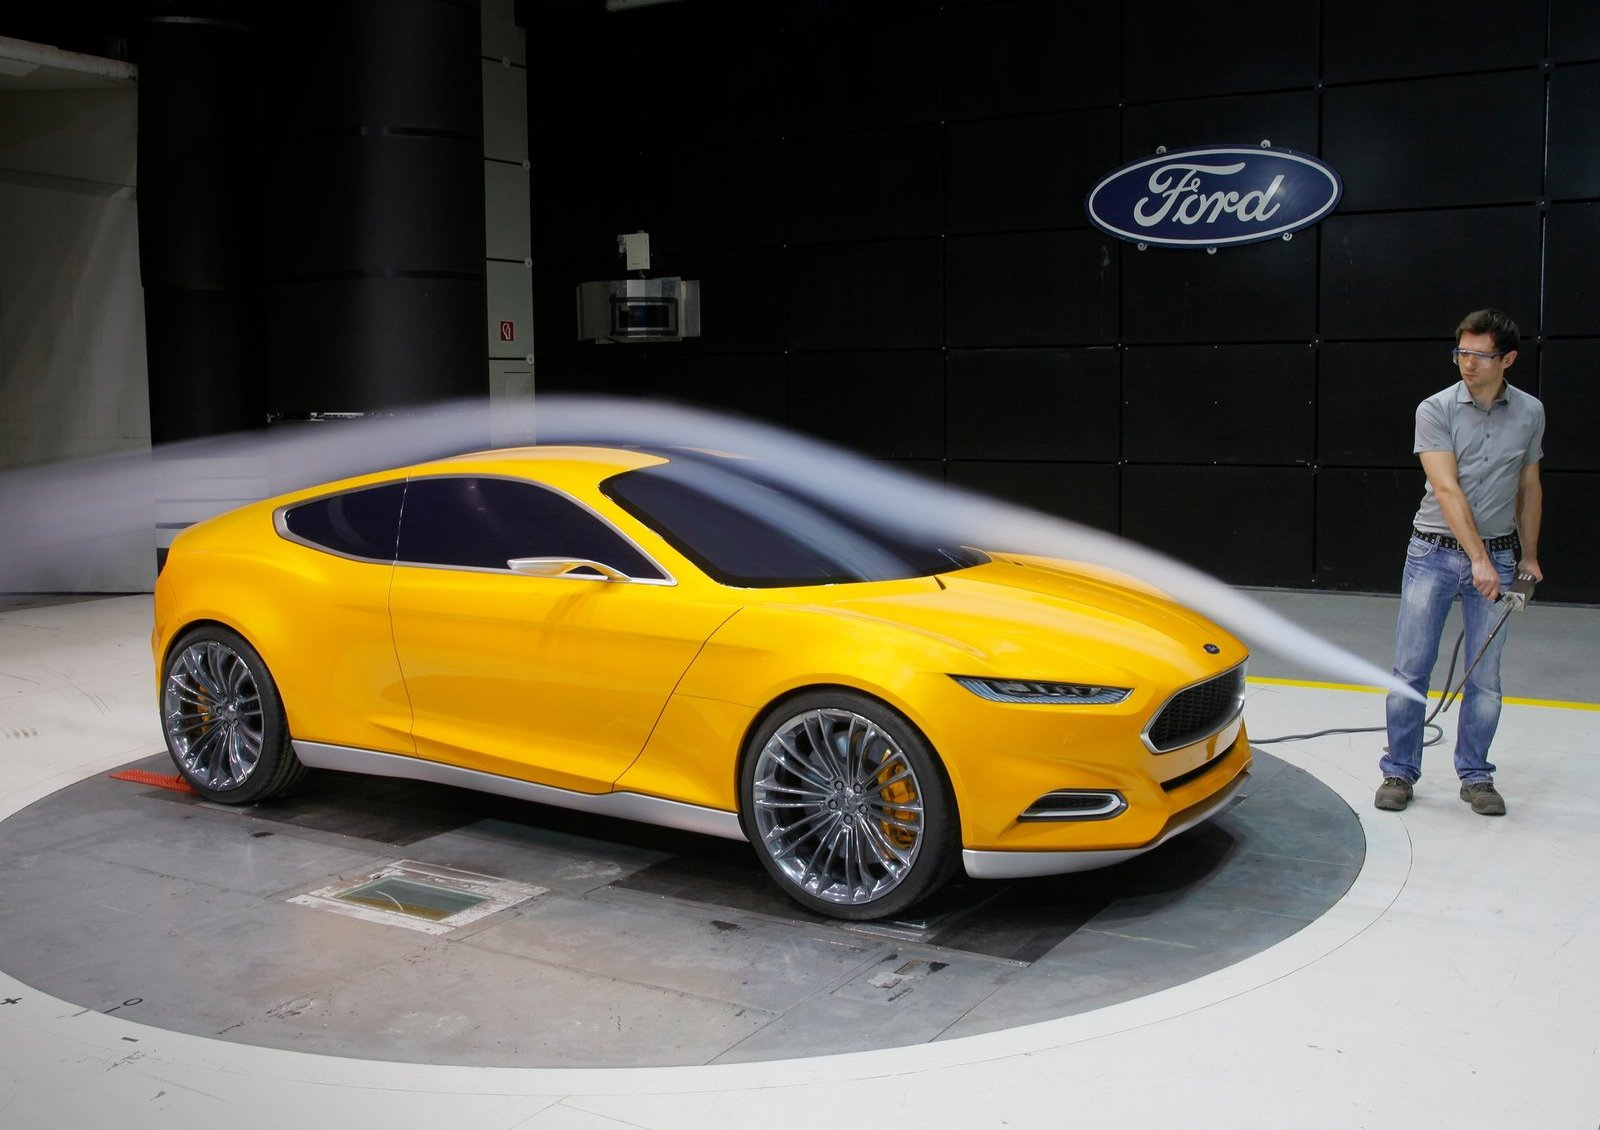 Ford Evos - 2013 FORD FUSION to Use 1.6-liter Ecoboost Engine ...